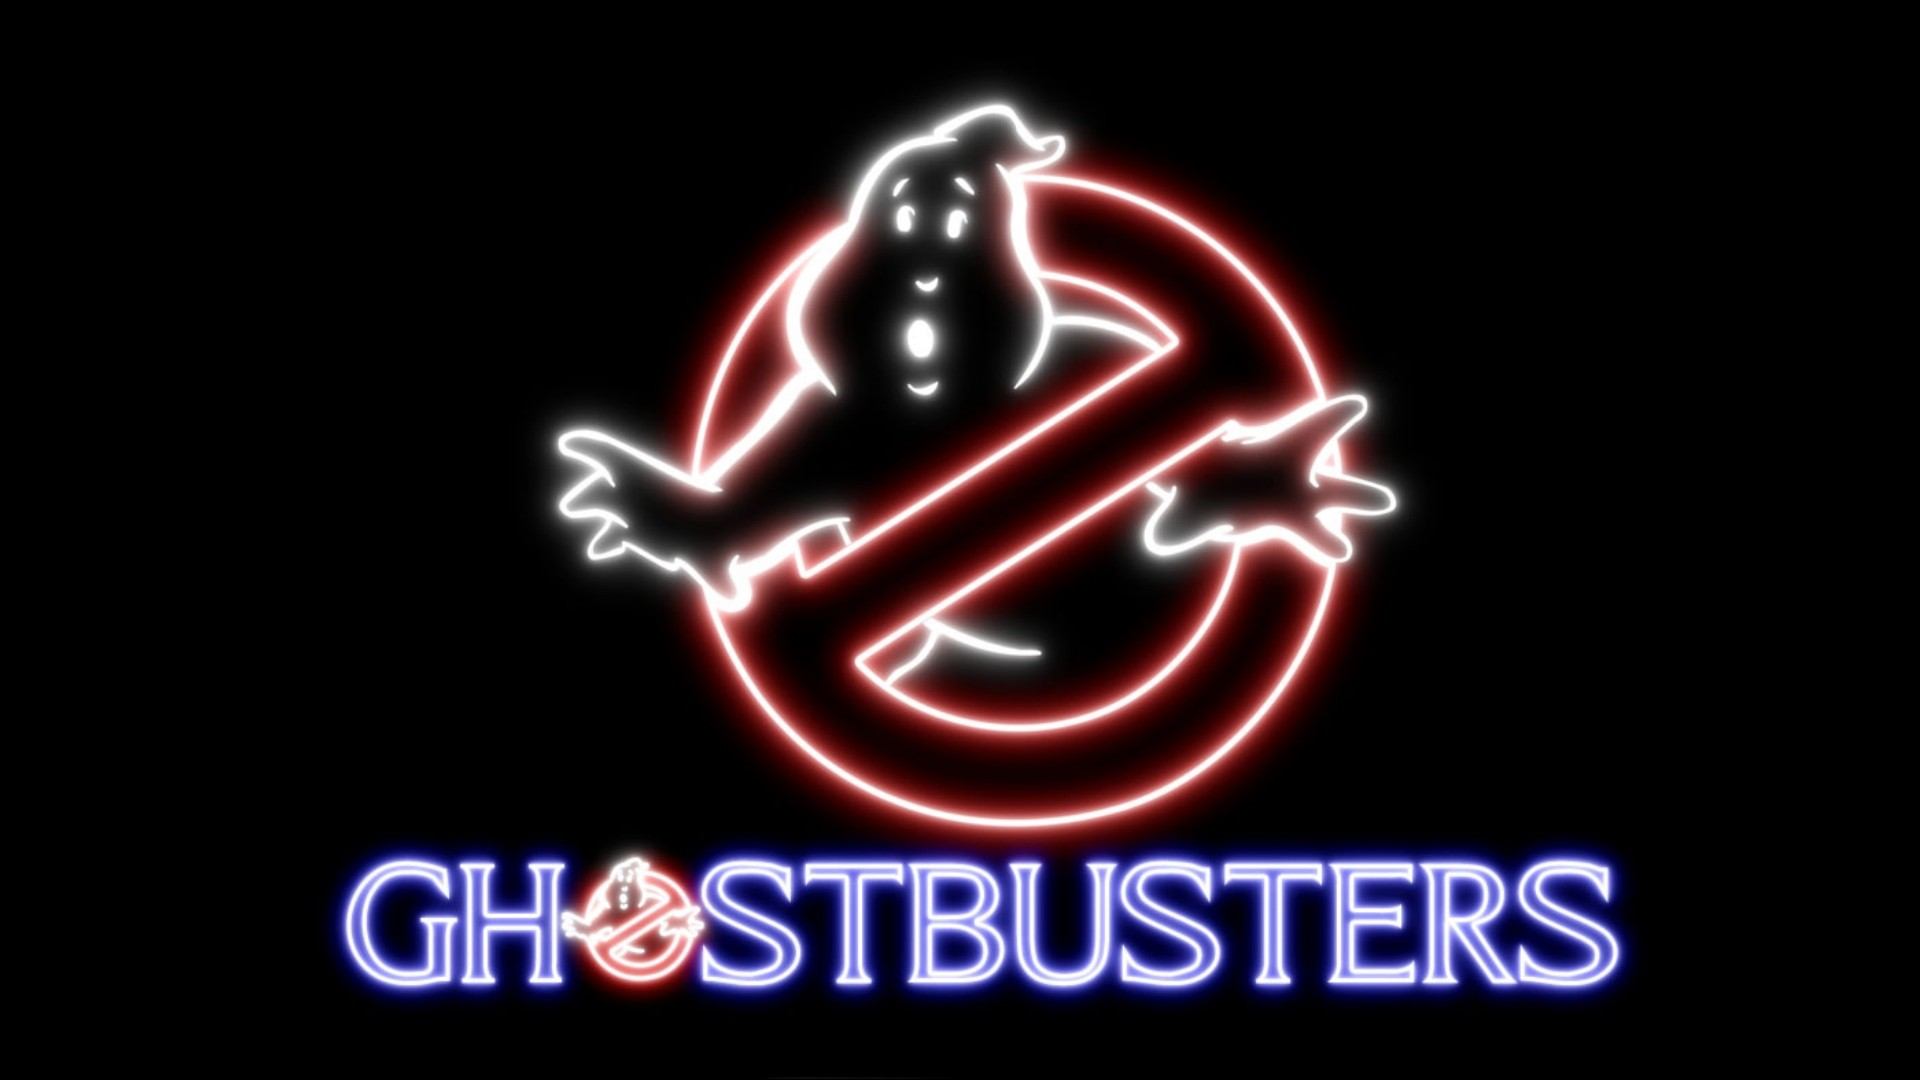 Collection of Ghost Busters Wallpaper on HDWallpapers